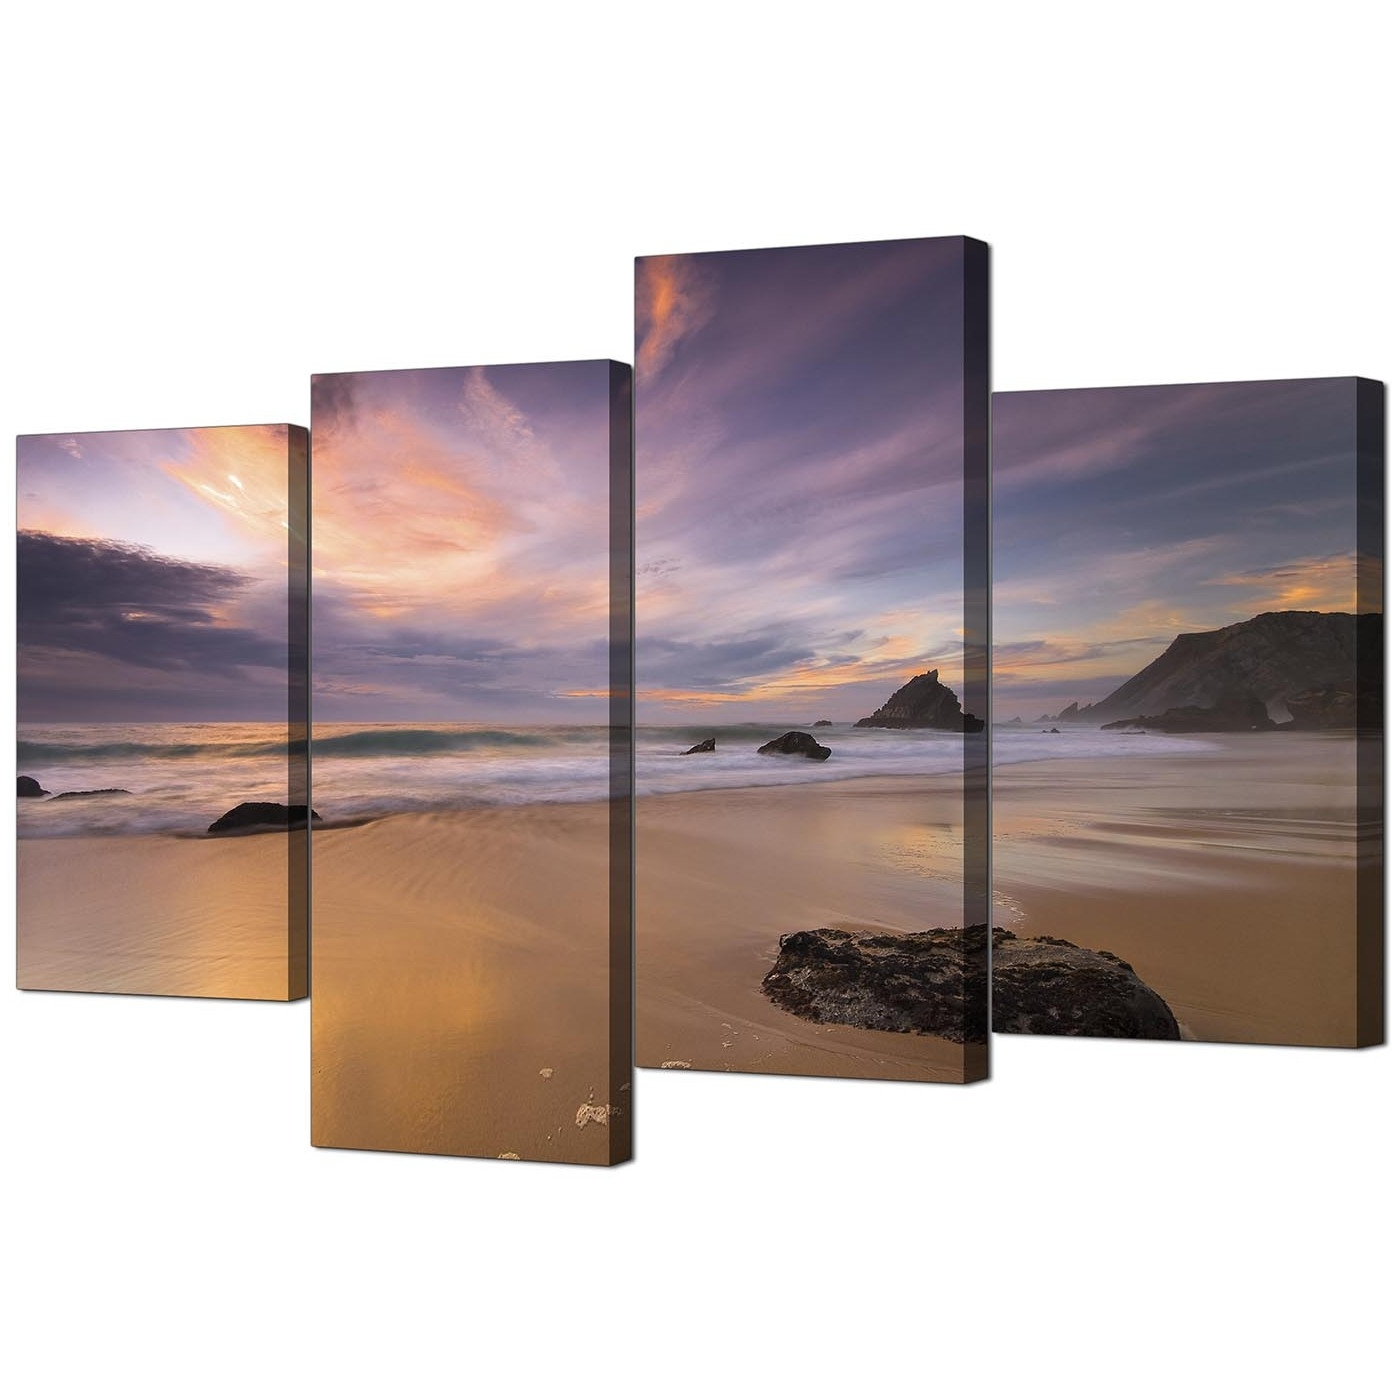 Preferred Photography Canvas Wall Art In Wall Art: 2017 Inexpensive Art Prints Art Prints For Sale, Cheap (View 14 of 15)